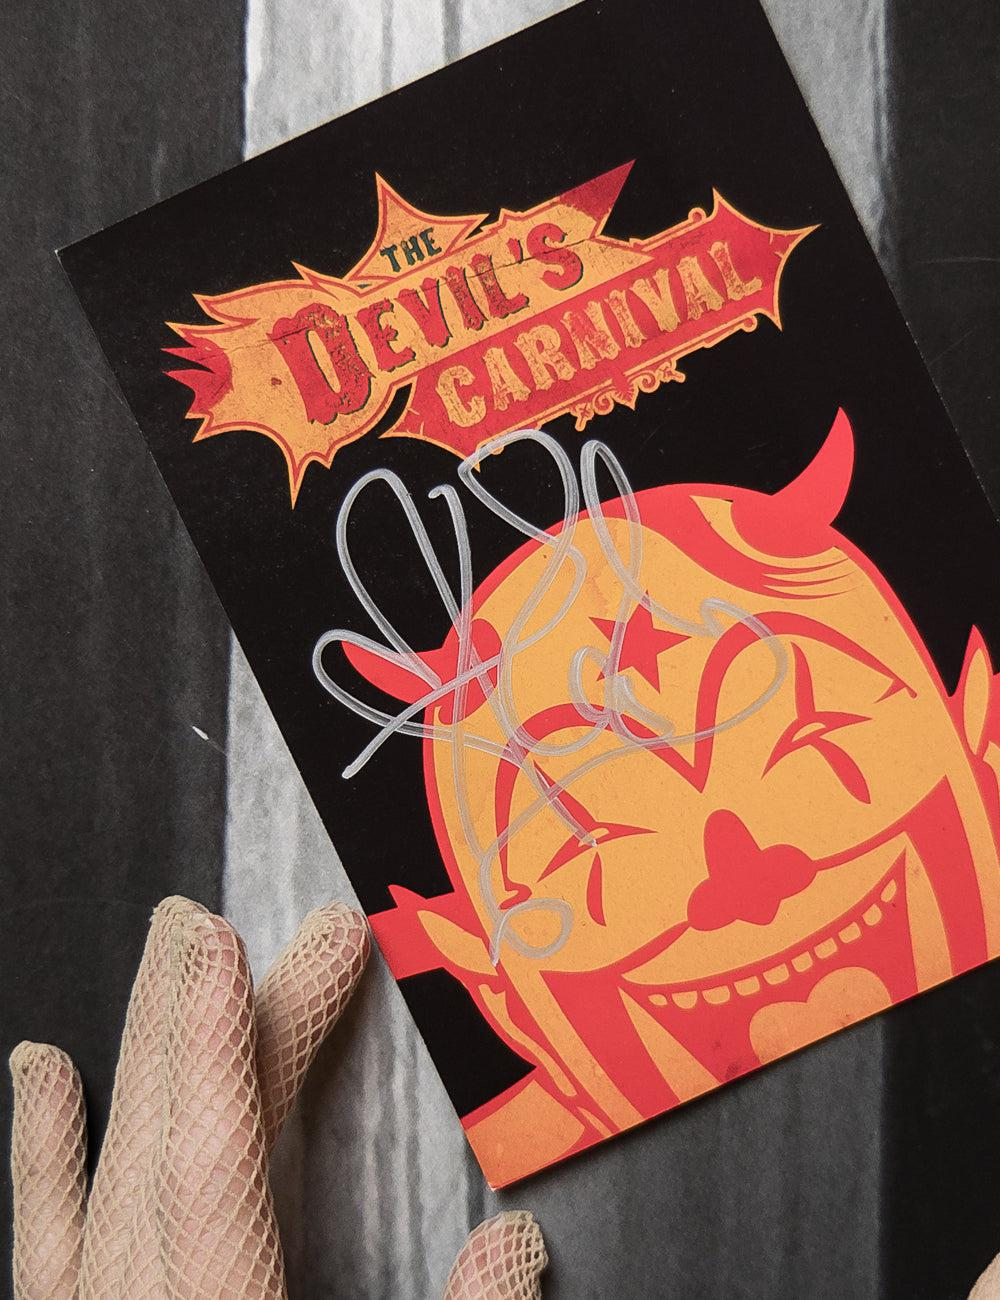 Autographed Limited Edition The Devil's Carnival Movie Painted Doll Collectable Card with Custom Dedication